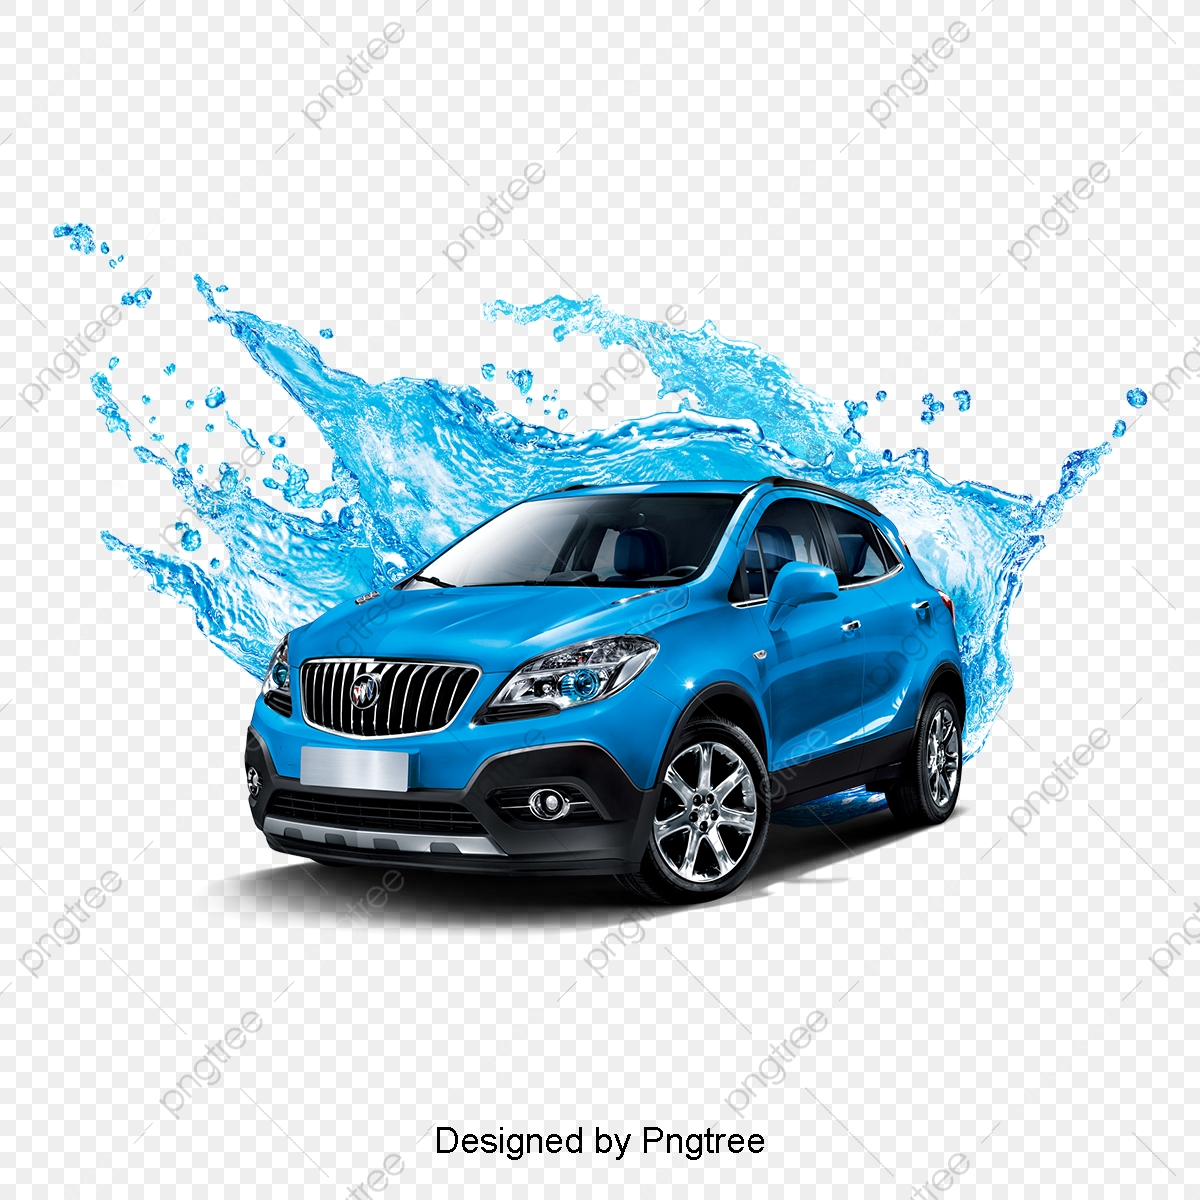 Car Wash, Car Clipart PNG Transparent Image and Clipart for Free.